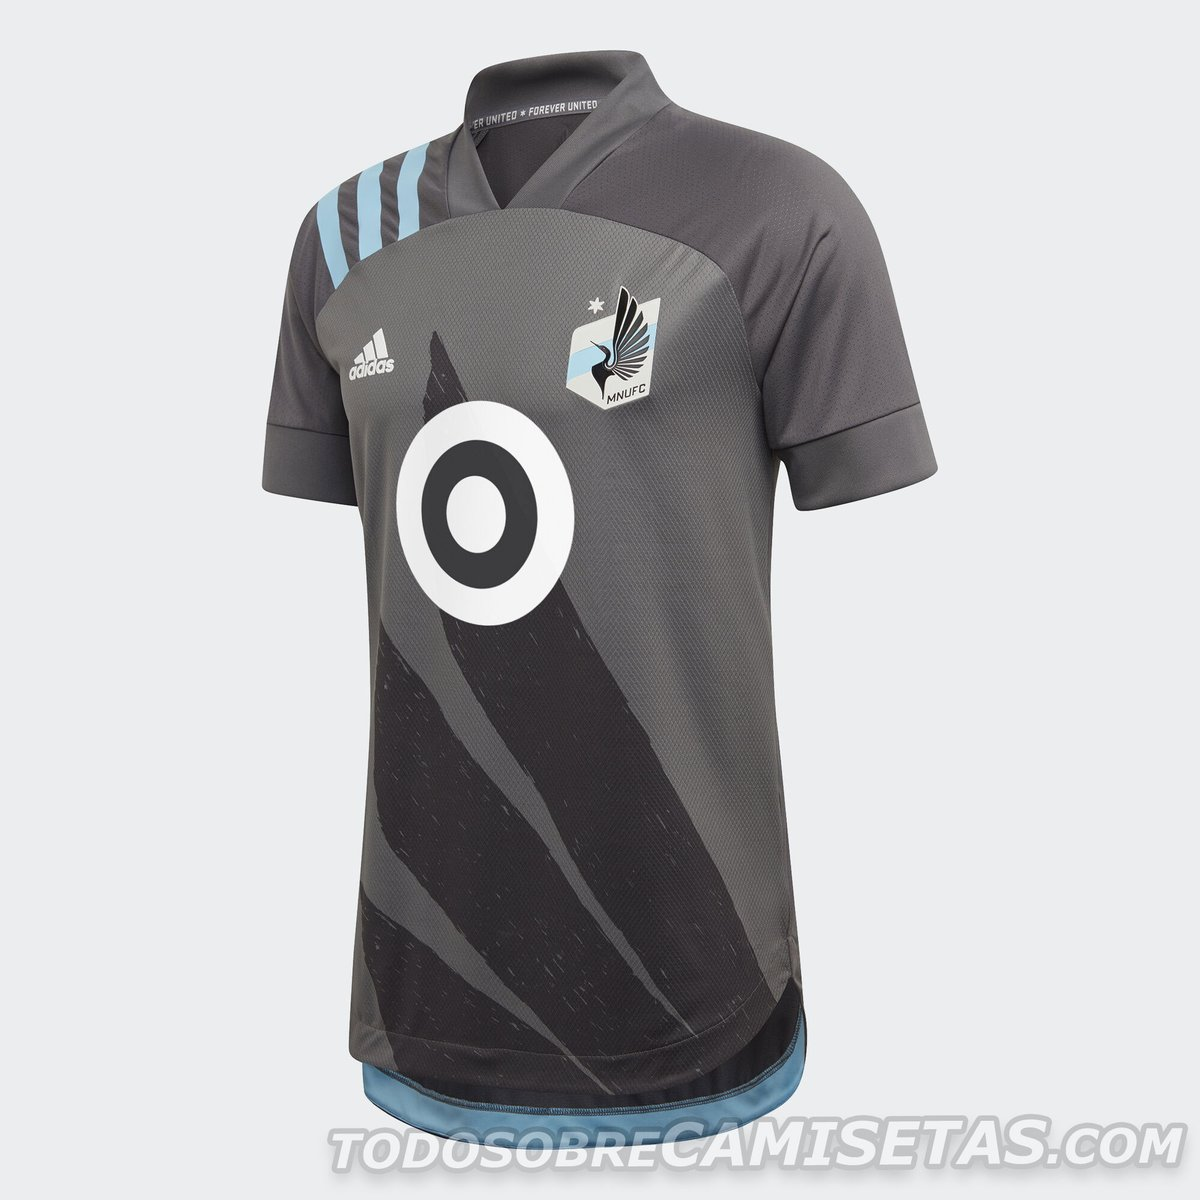 MLS 2020 adidas Kits - Minnesota United 2020 adidas Home Kit